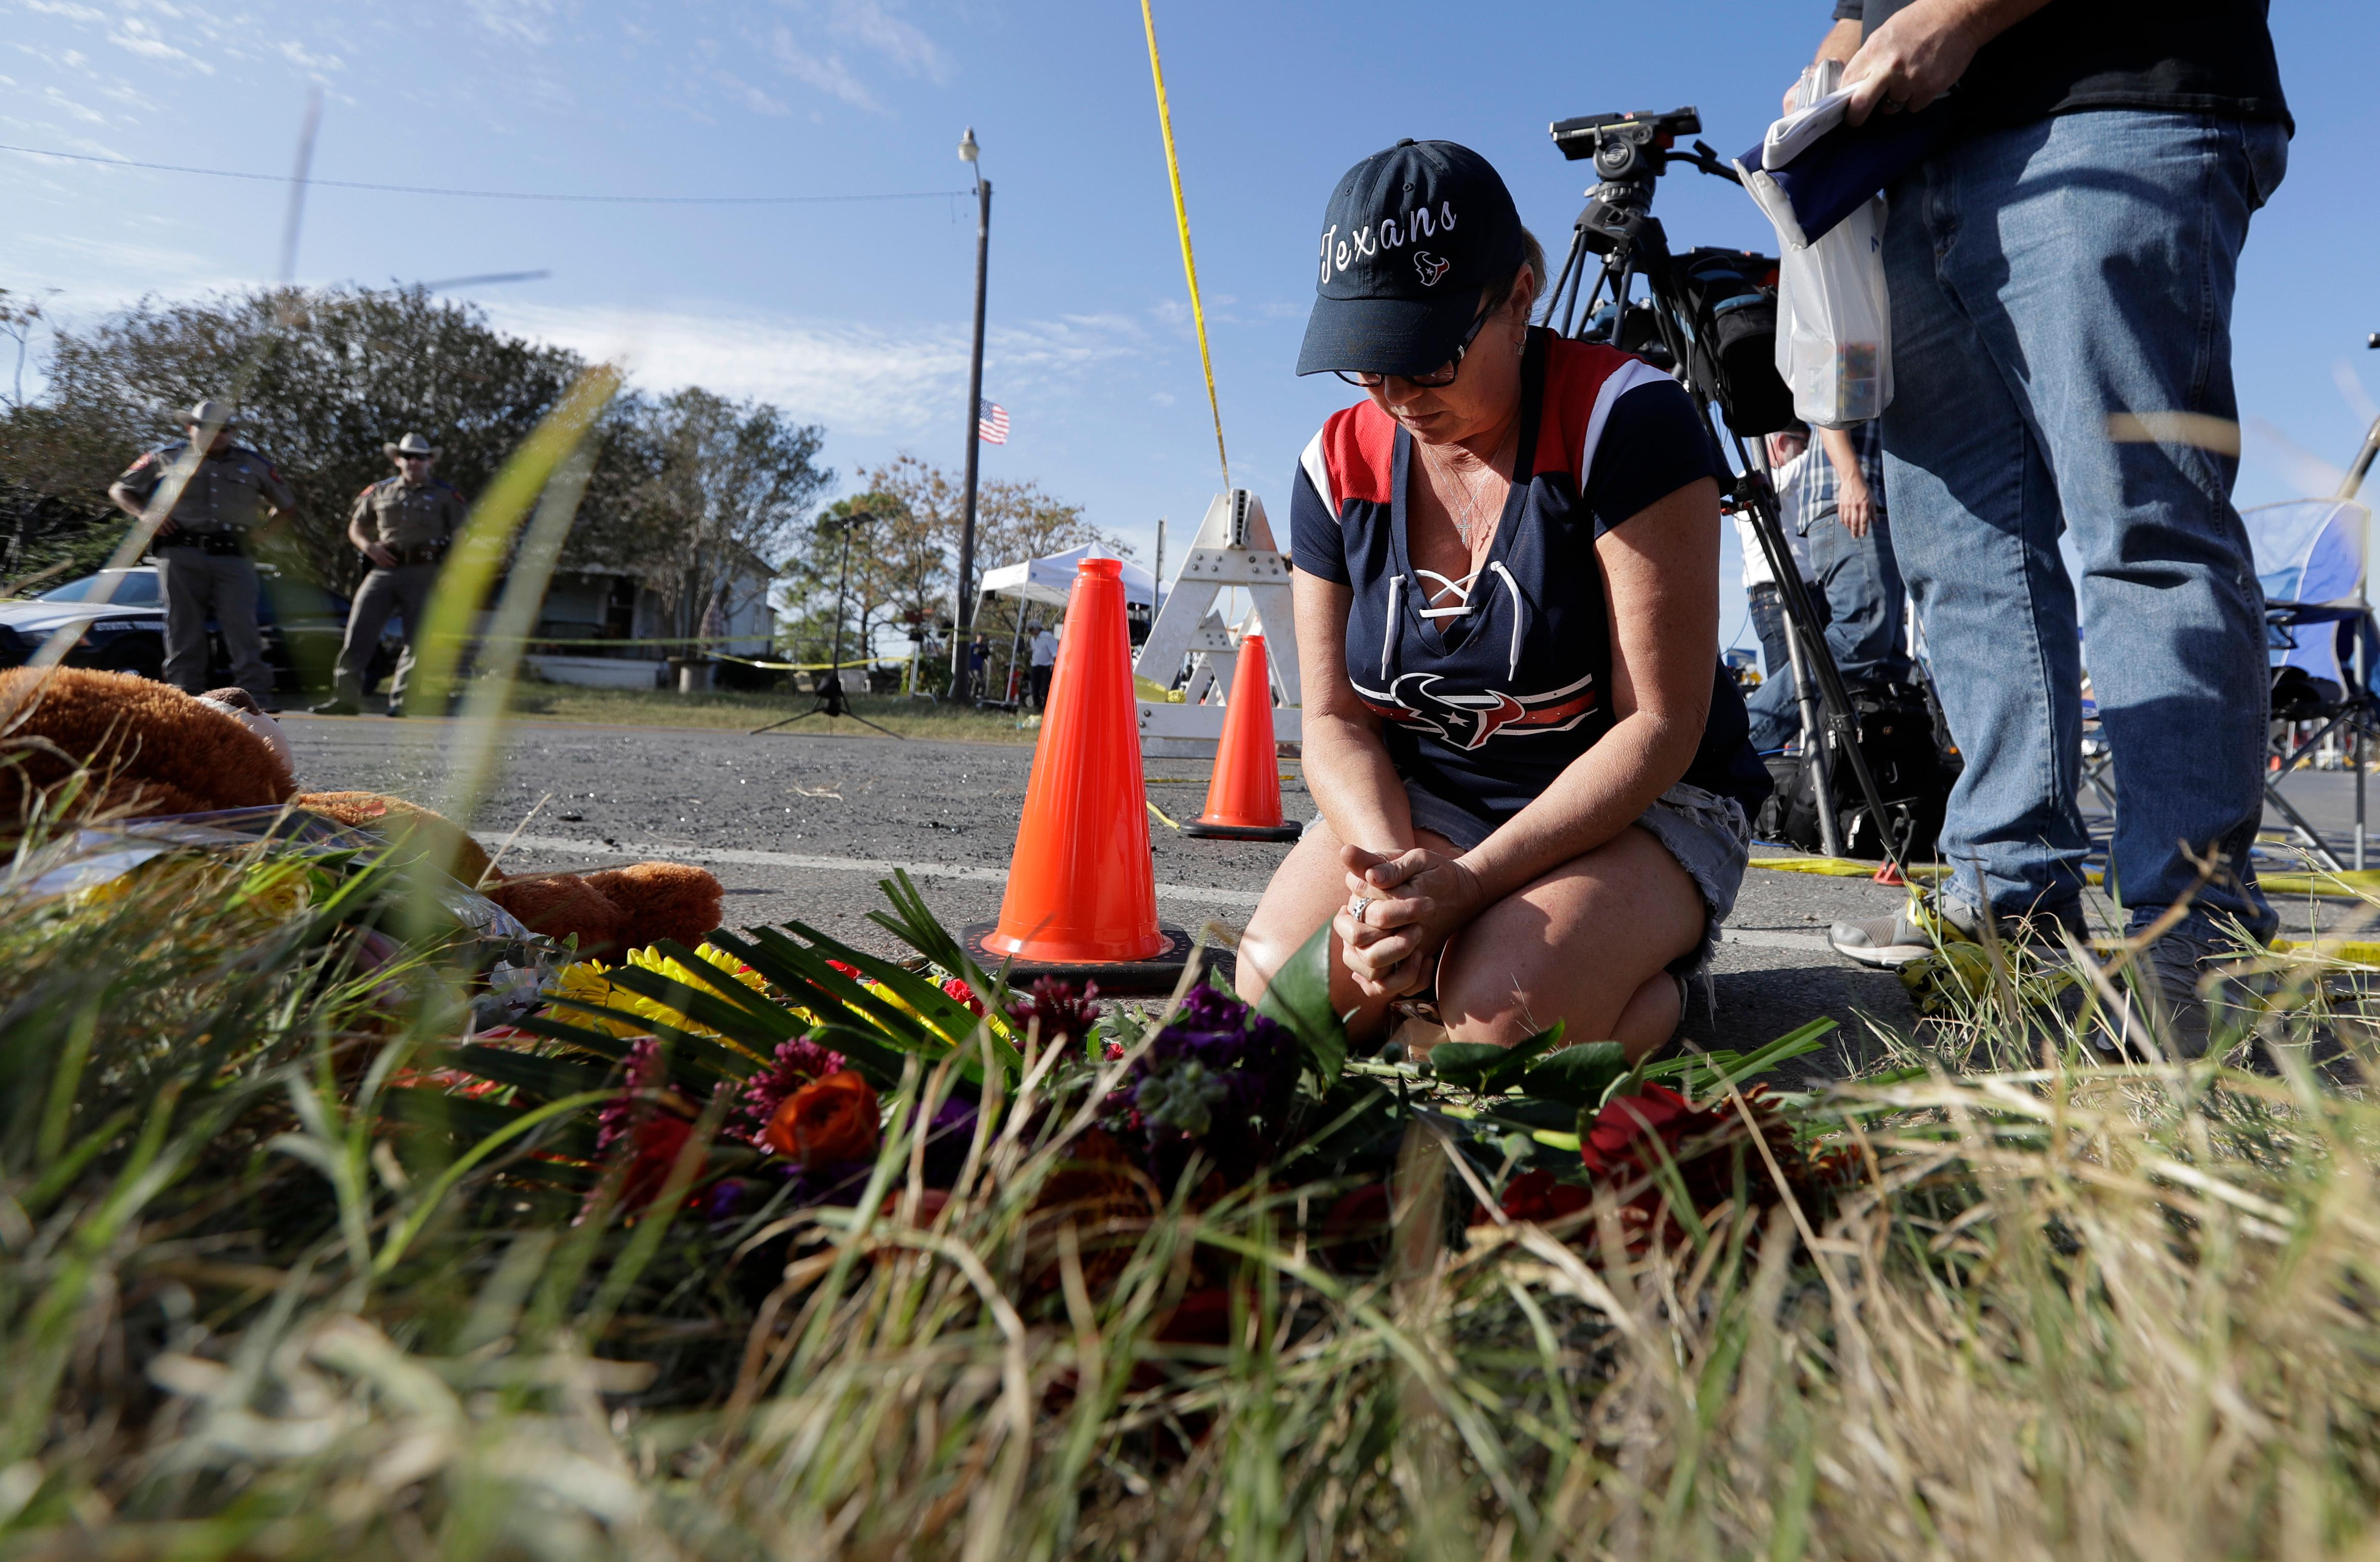 Rebecca Thompson prays at a makeshift memorial near the scene of a shooting at the First Baptist Church of Sutherland Springs to honor victims, Monday, Nov. 6, 2017, in Sutherland Springs, Texas. A man opened fire inside the church in the small South Texas community on Sunday, killing and wounding many. (AP Photo/Eric Gay)